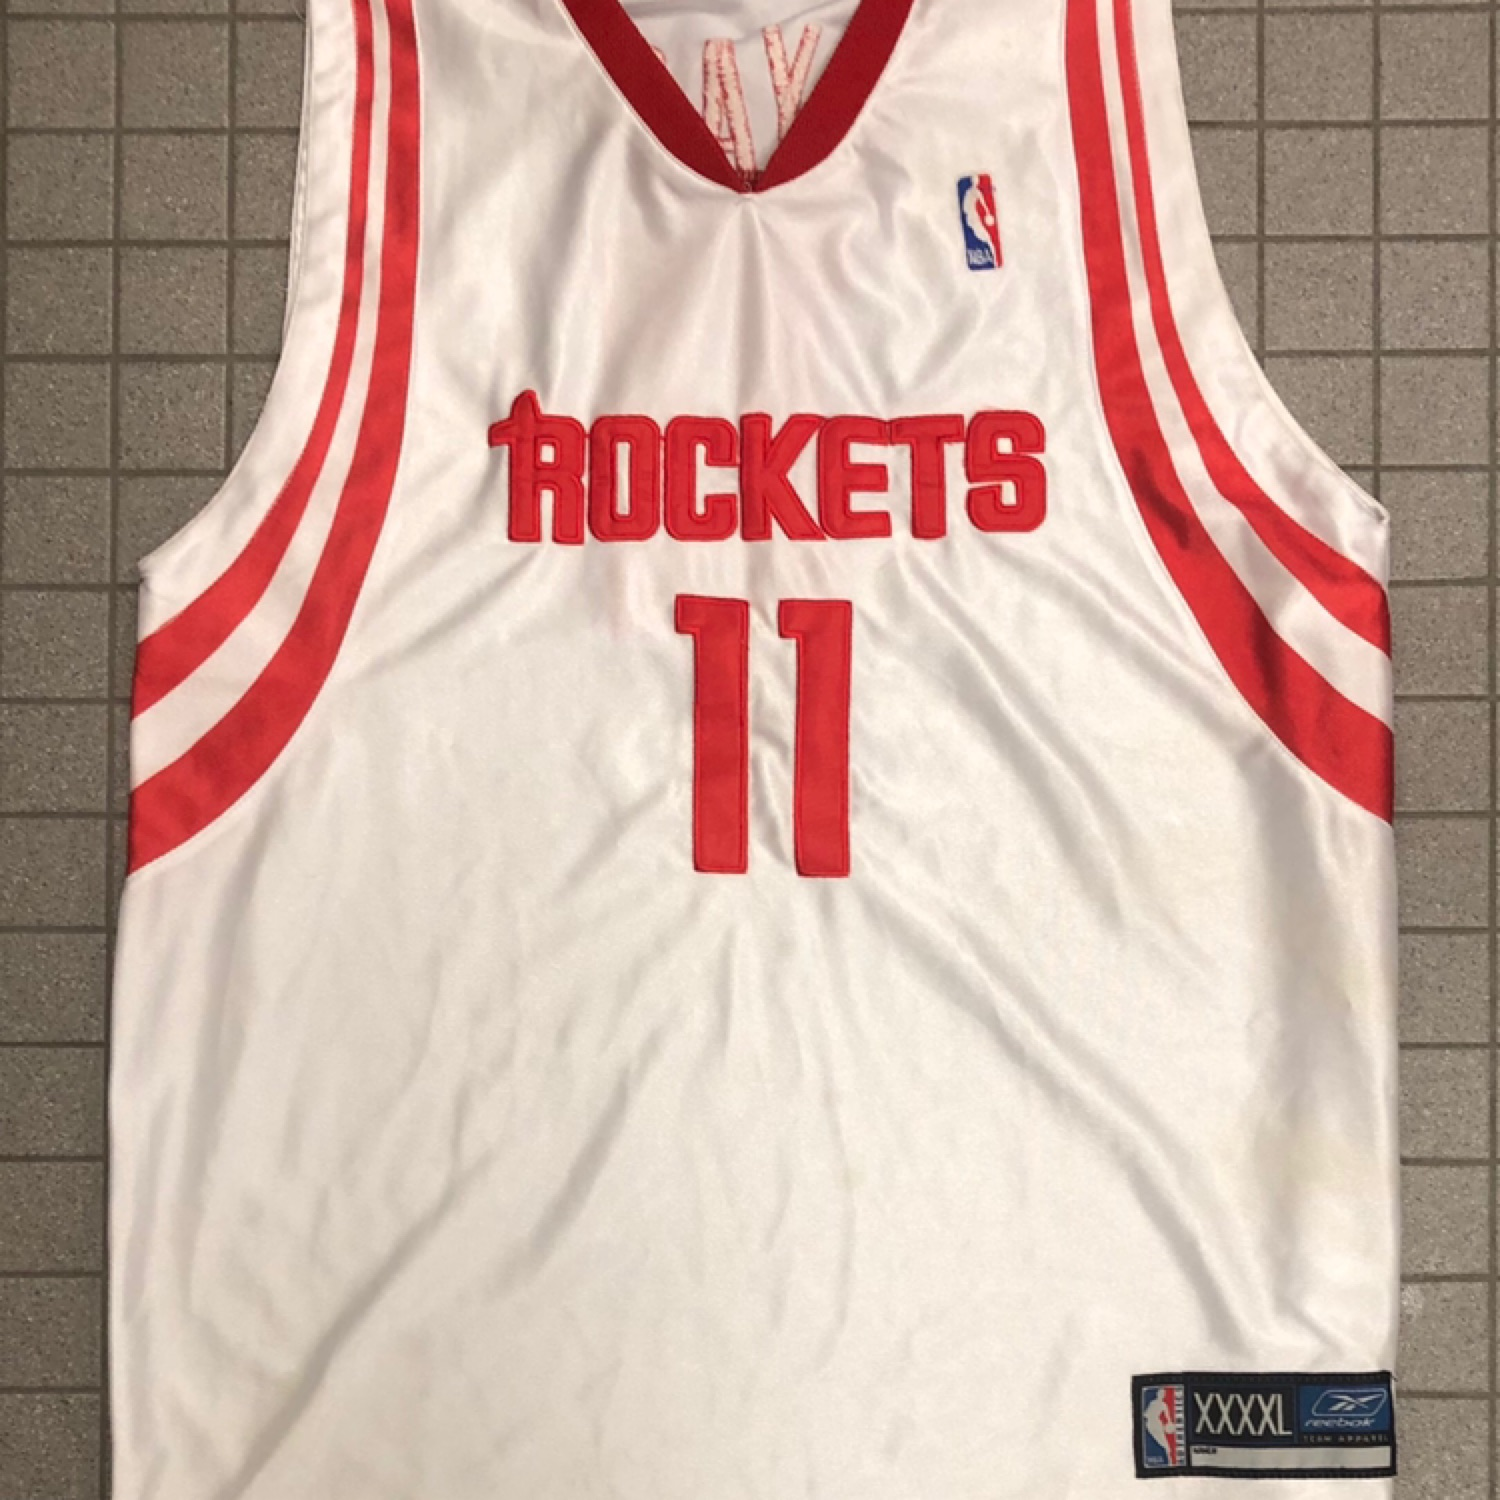 competitive price 6a360 7ed92 Yao Ming Jersey Basketball Vintage